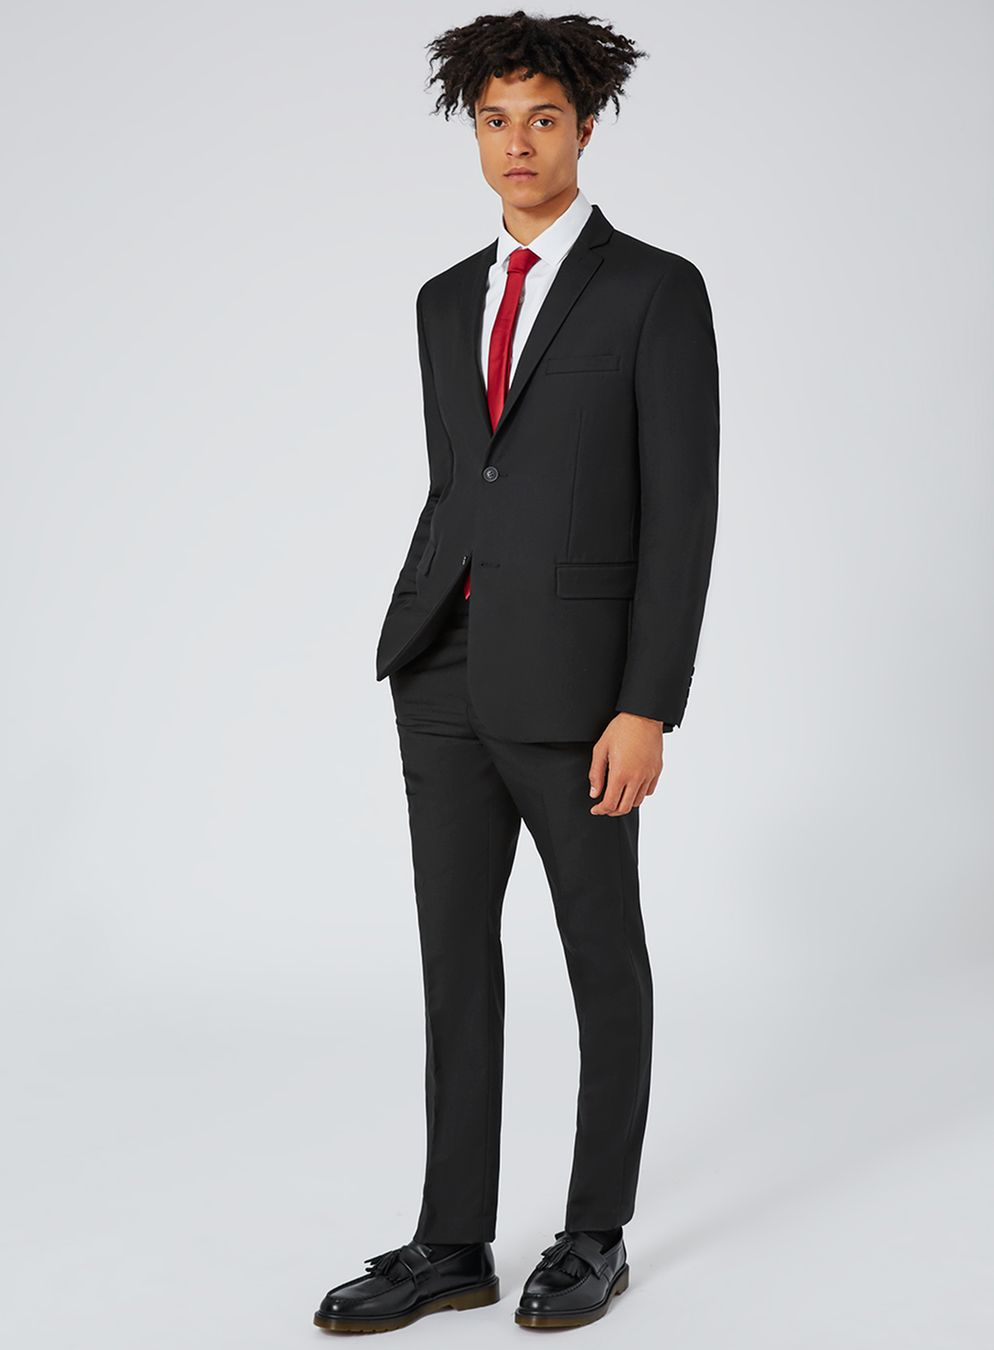 black slim fit suit jacket - topman usa caonfwe